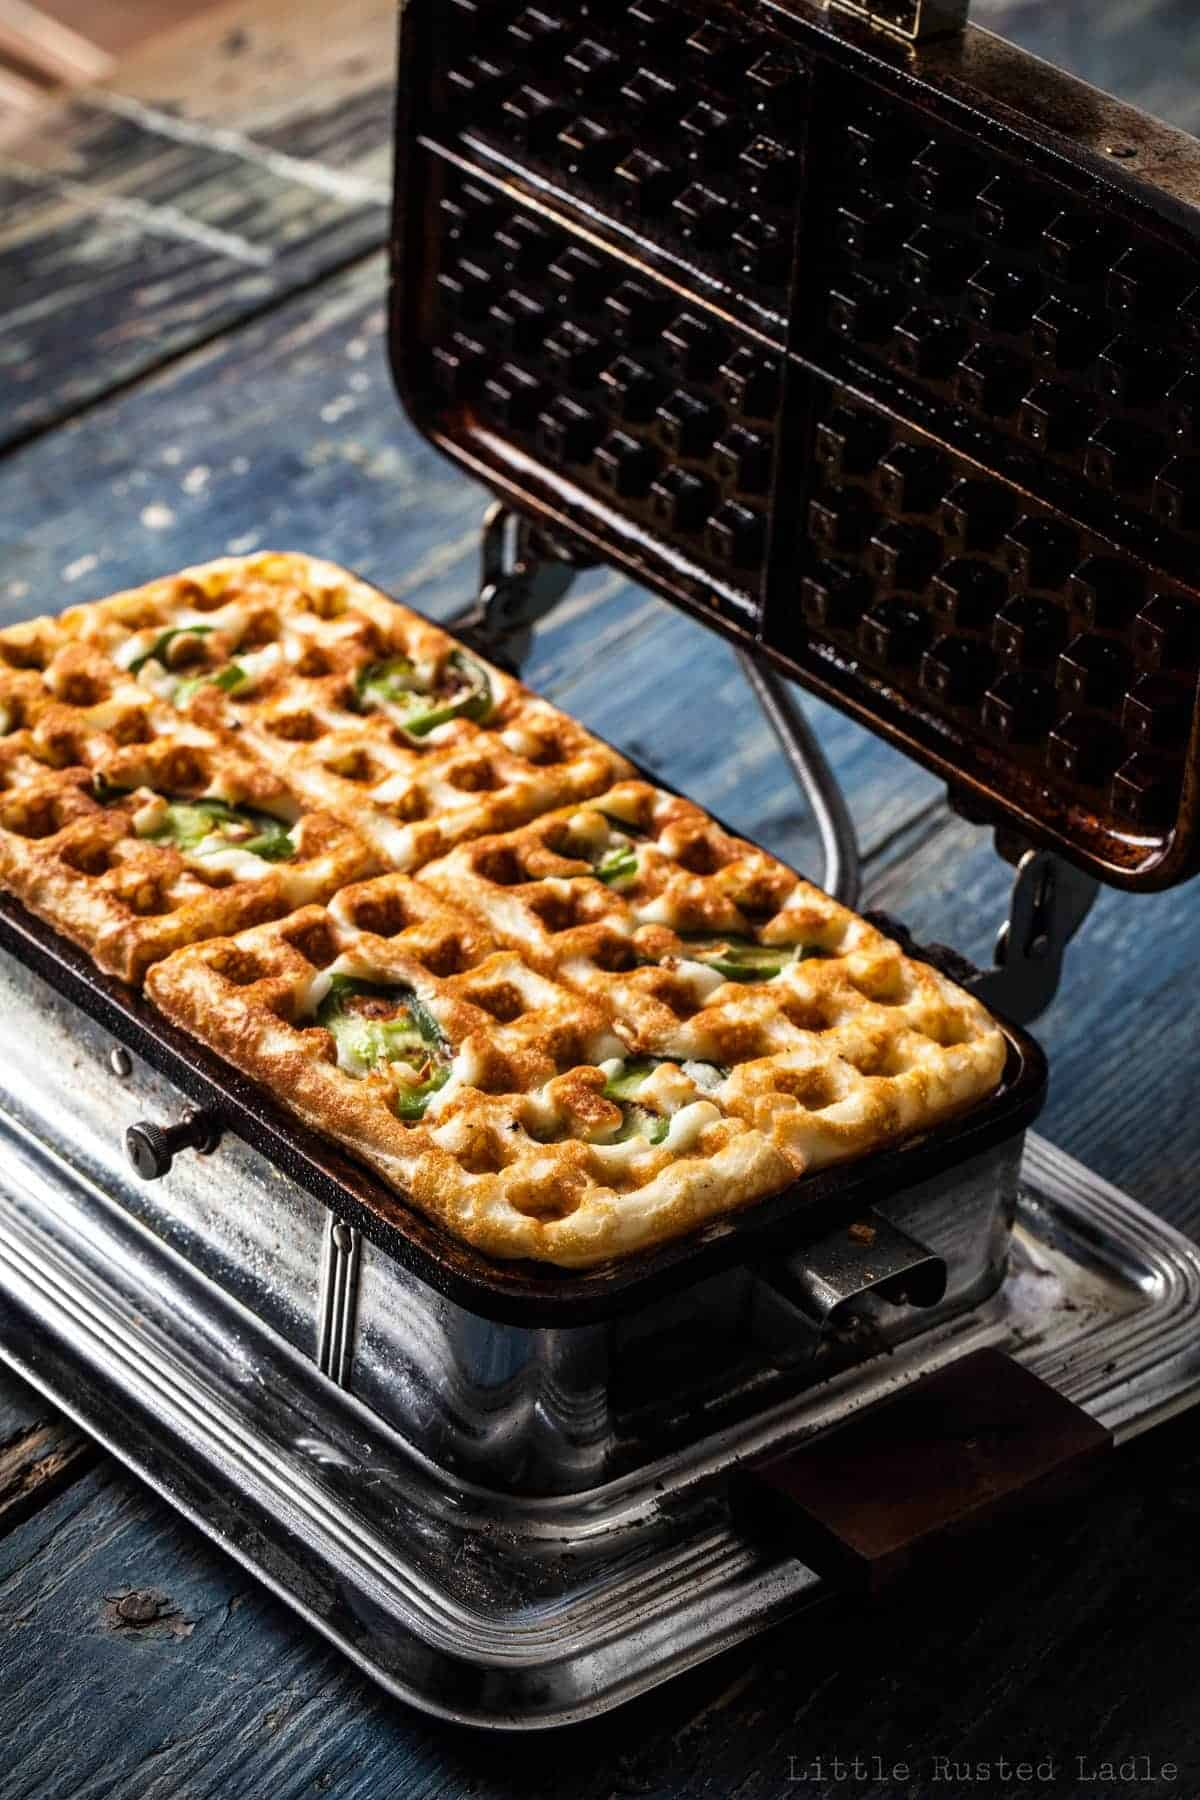 Waffle Sandwich How To - Little Rusted Ladle - Jena Carlin Photography -032 96 WM